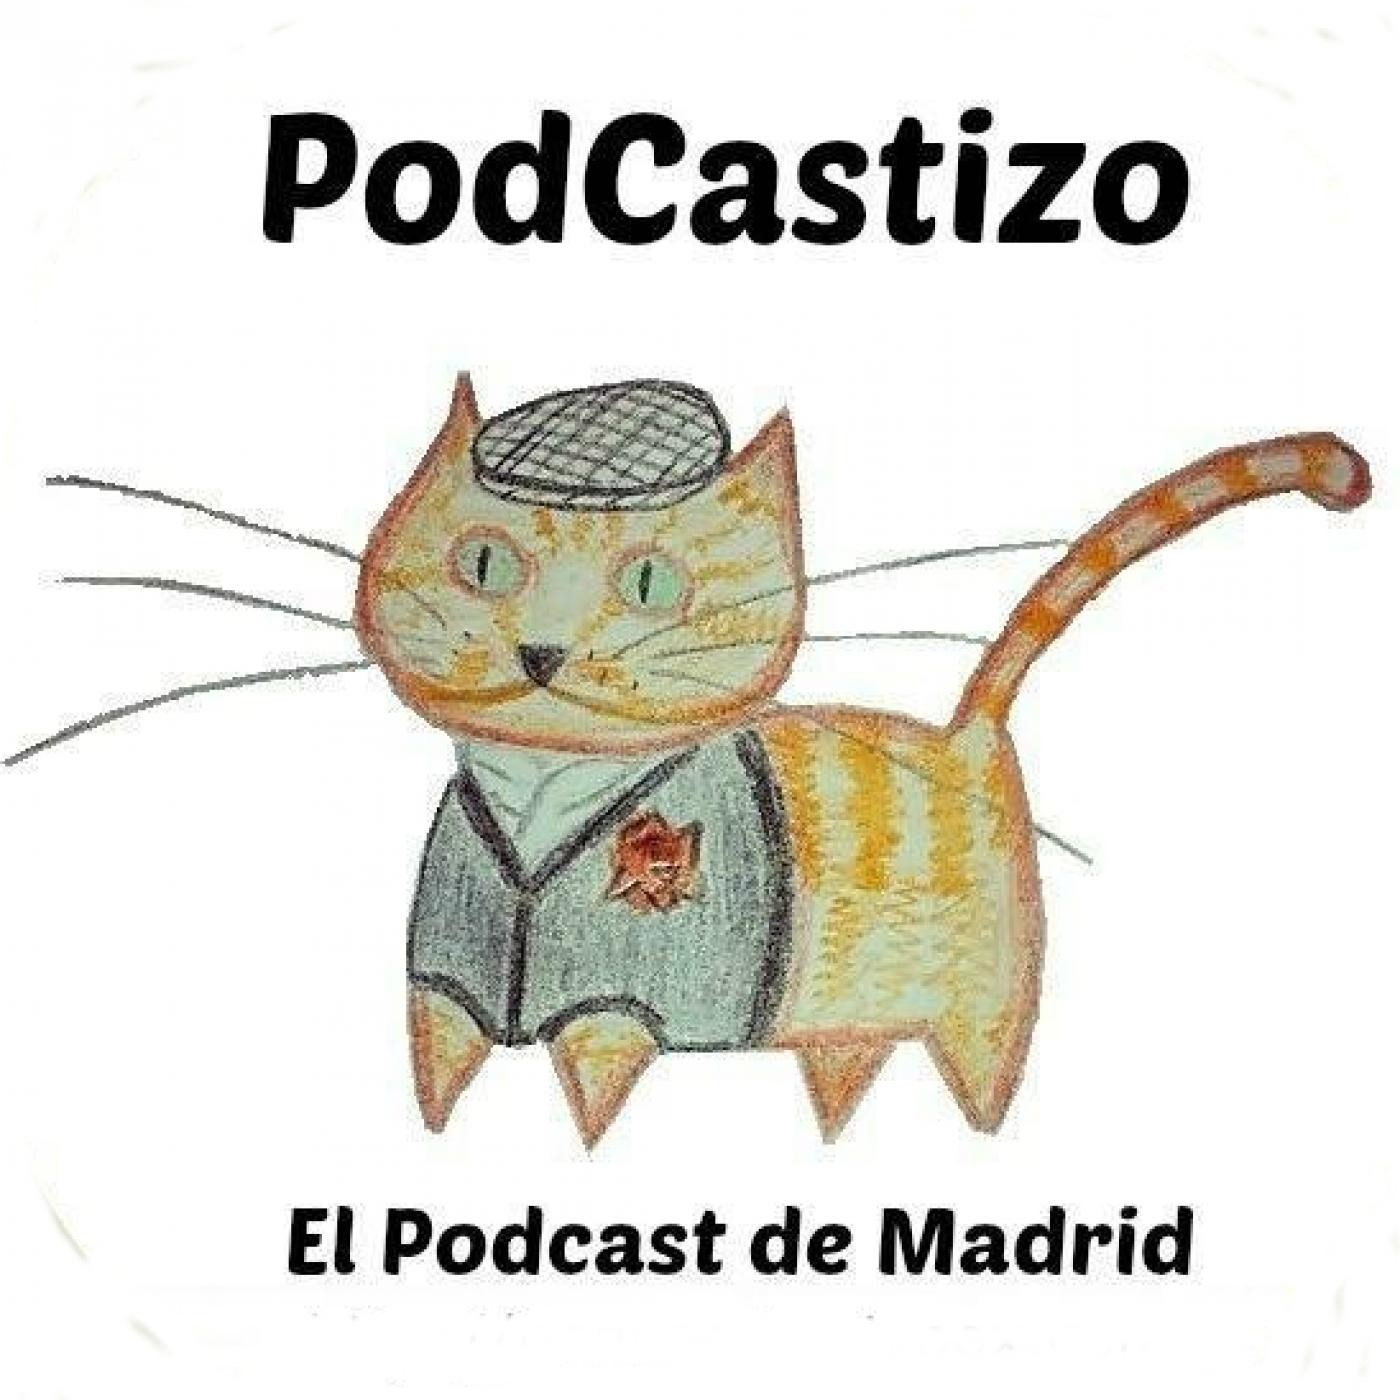 Logo de PodCastizo, el podcast de Madrid